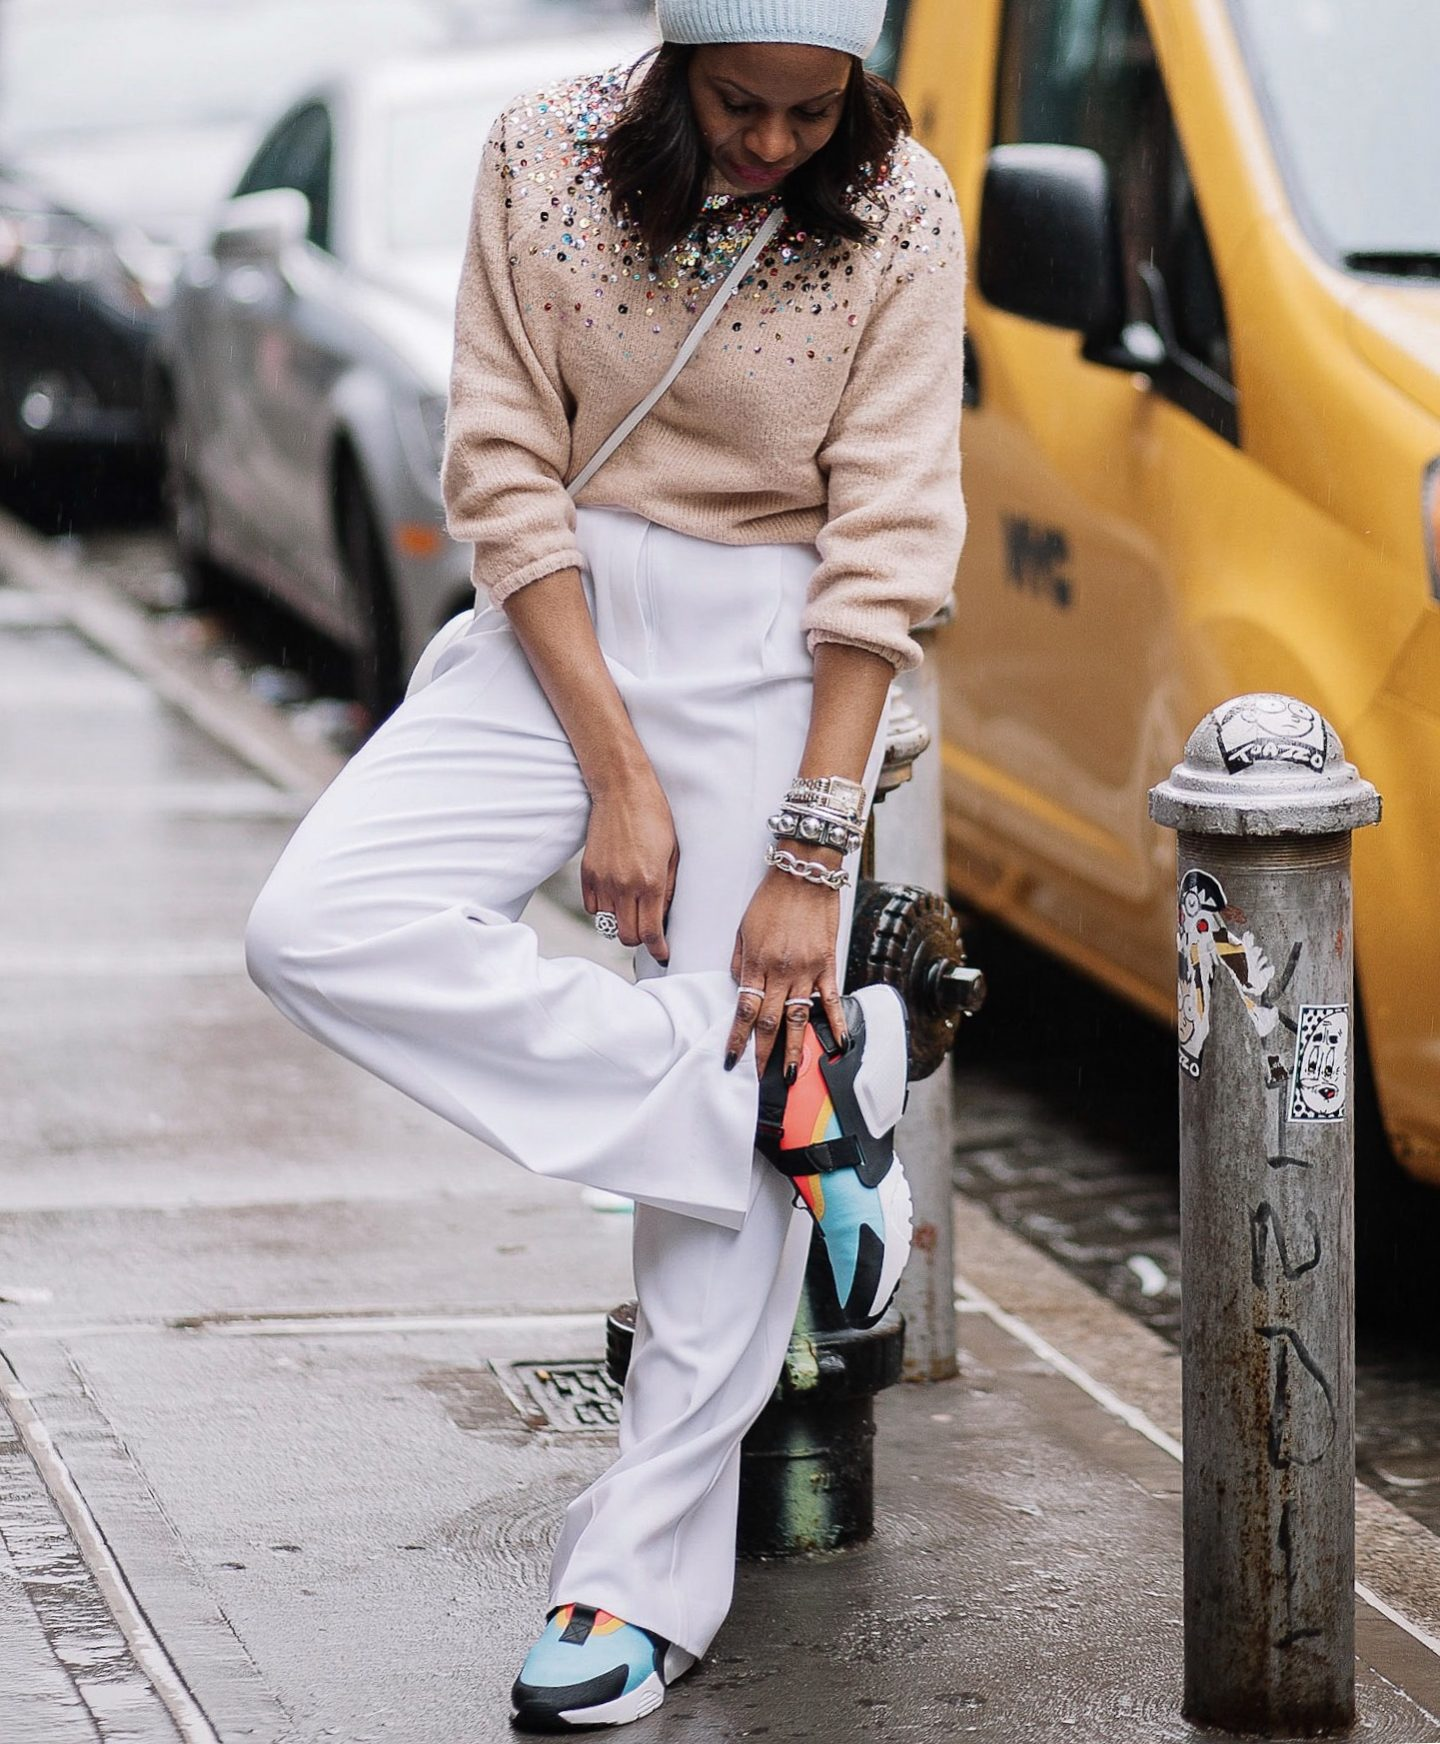 THE SNEAKERS THAT WILL MAKE YOUR WEEKEND OUTFIT COOL